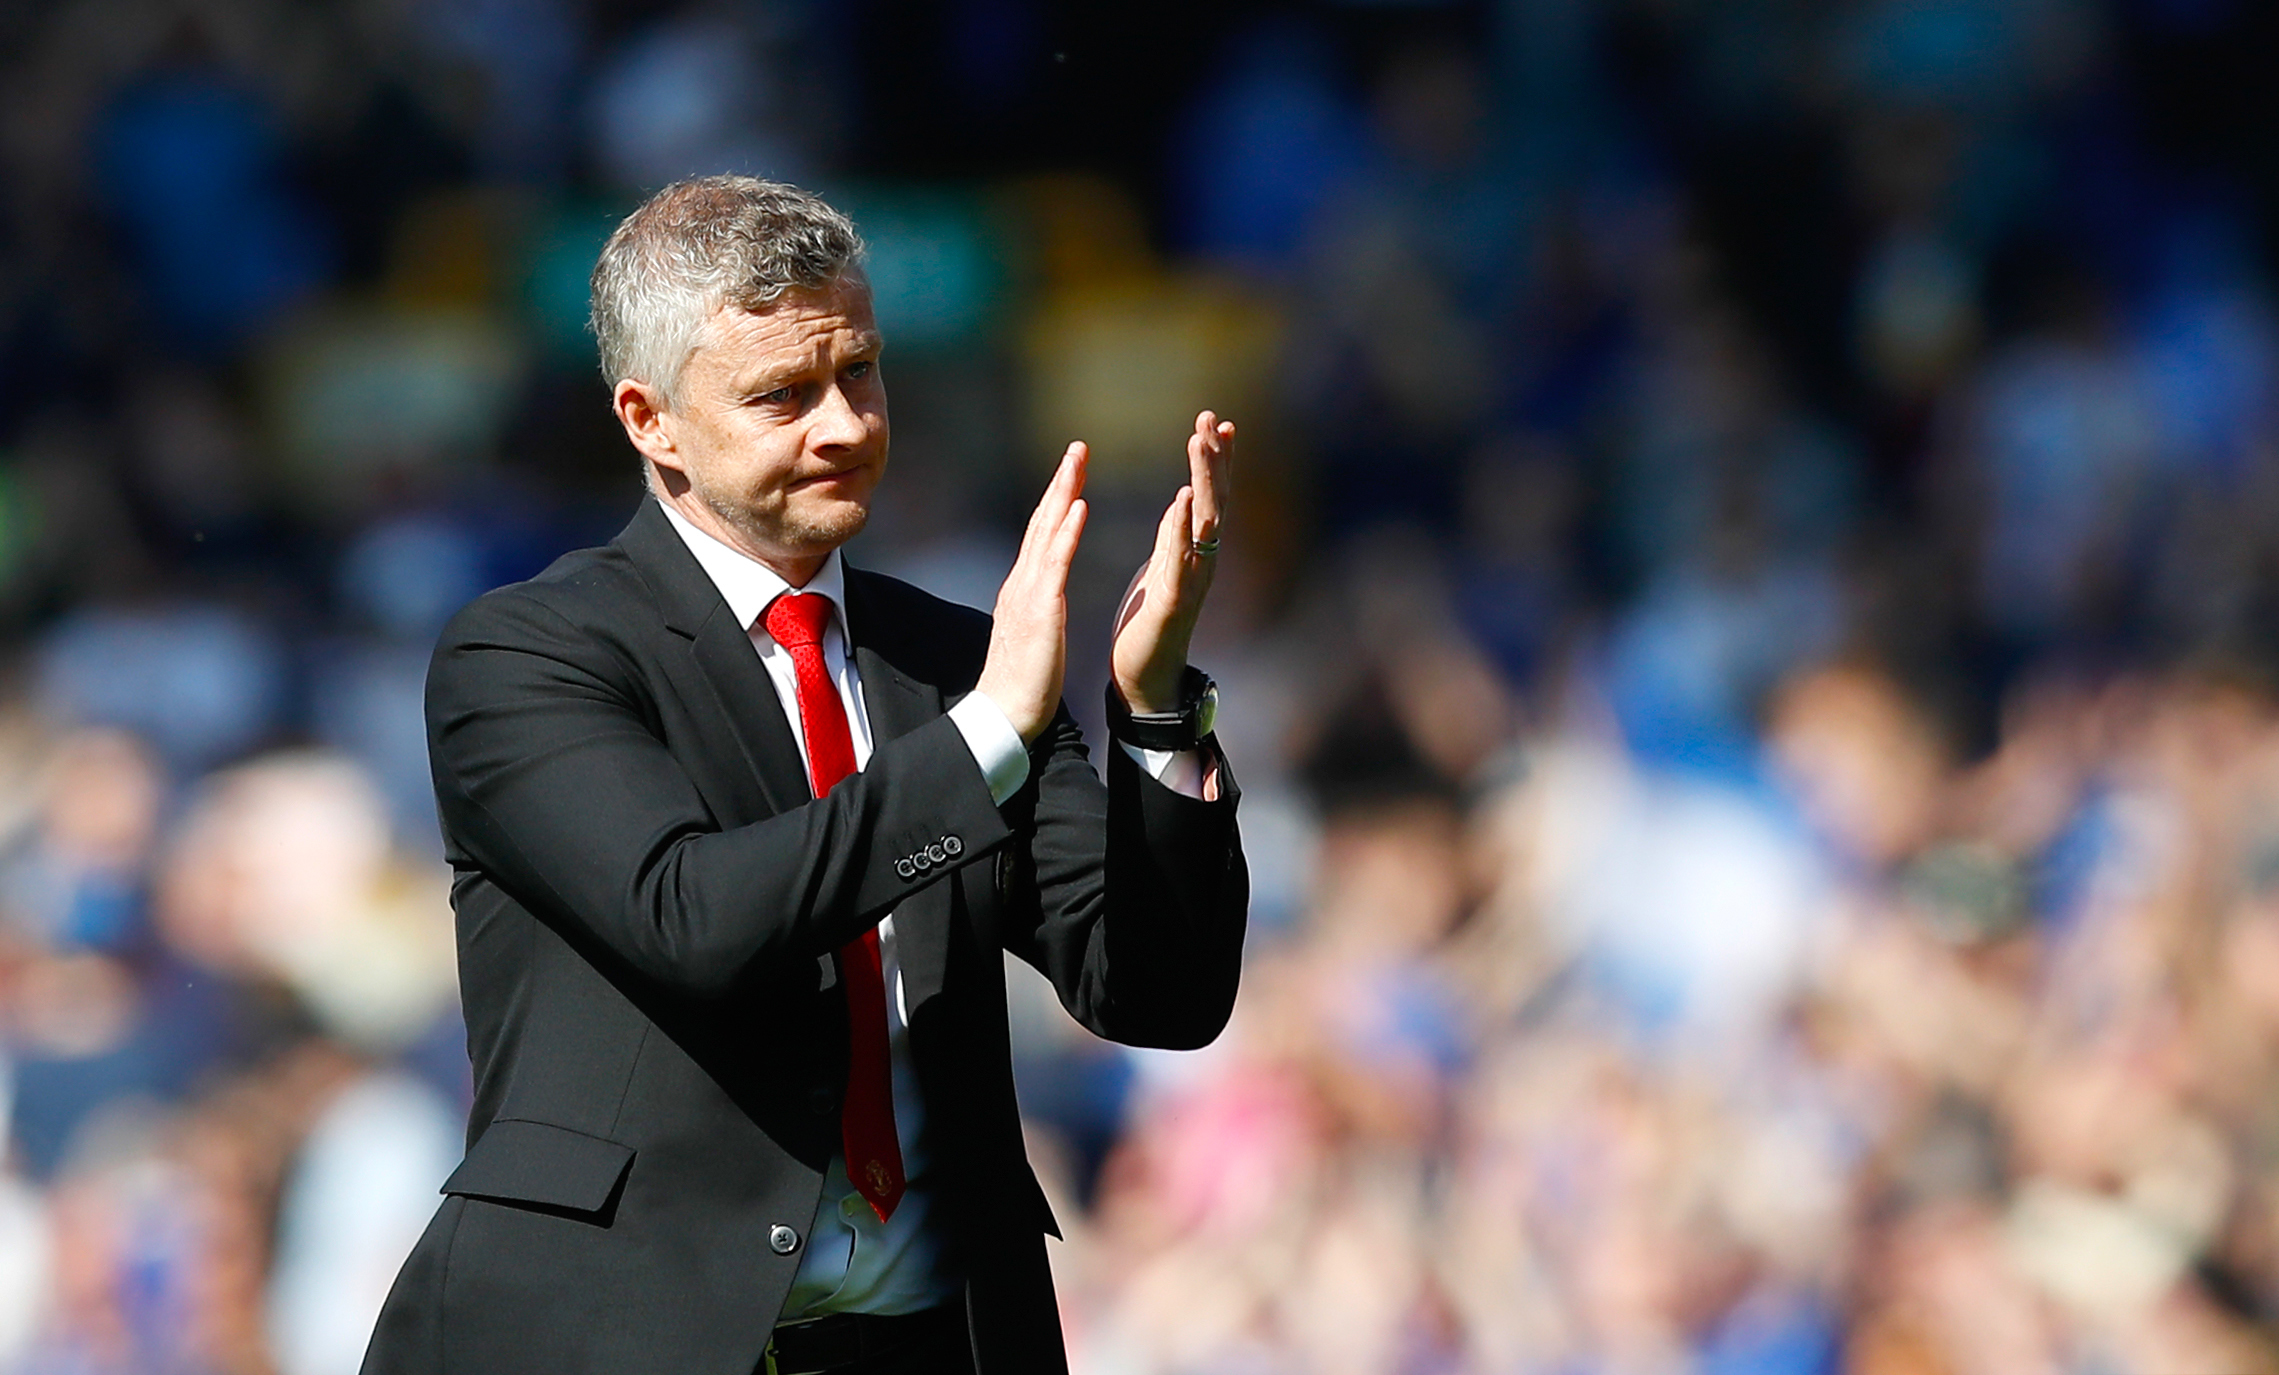 Solskjaer applauds the fans because the players didn't deserve it. Image: PA Images